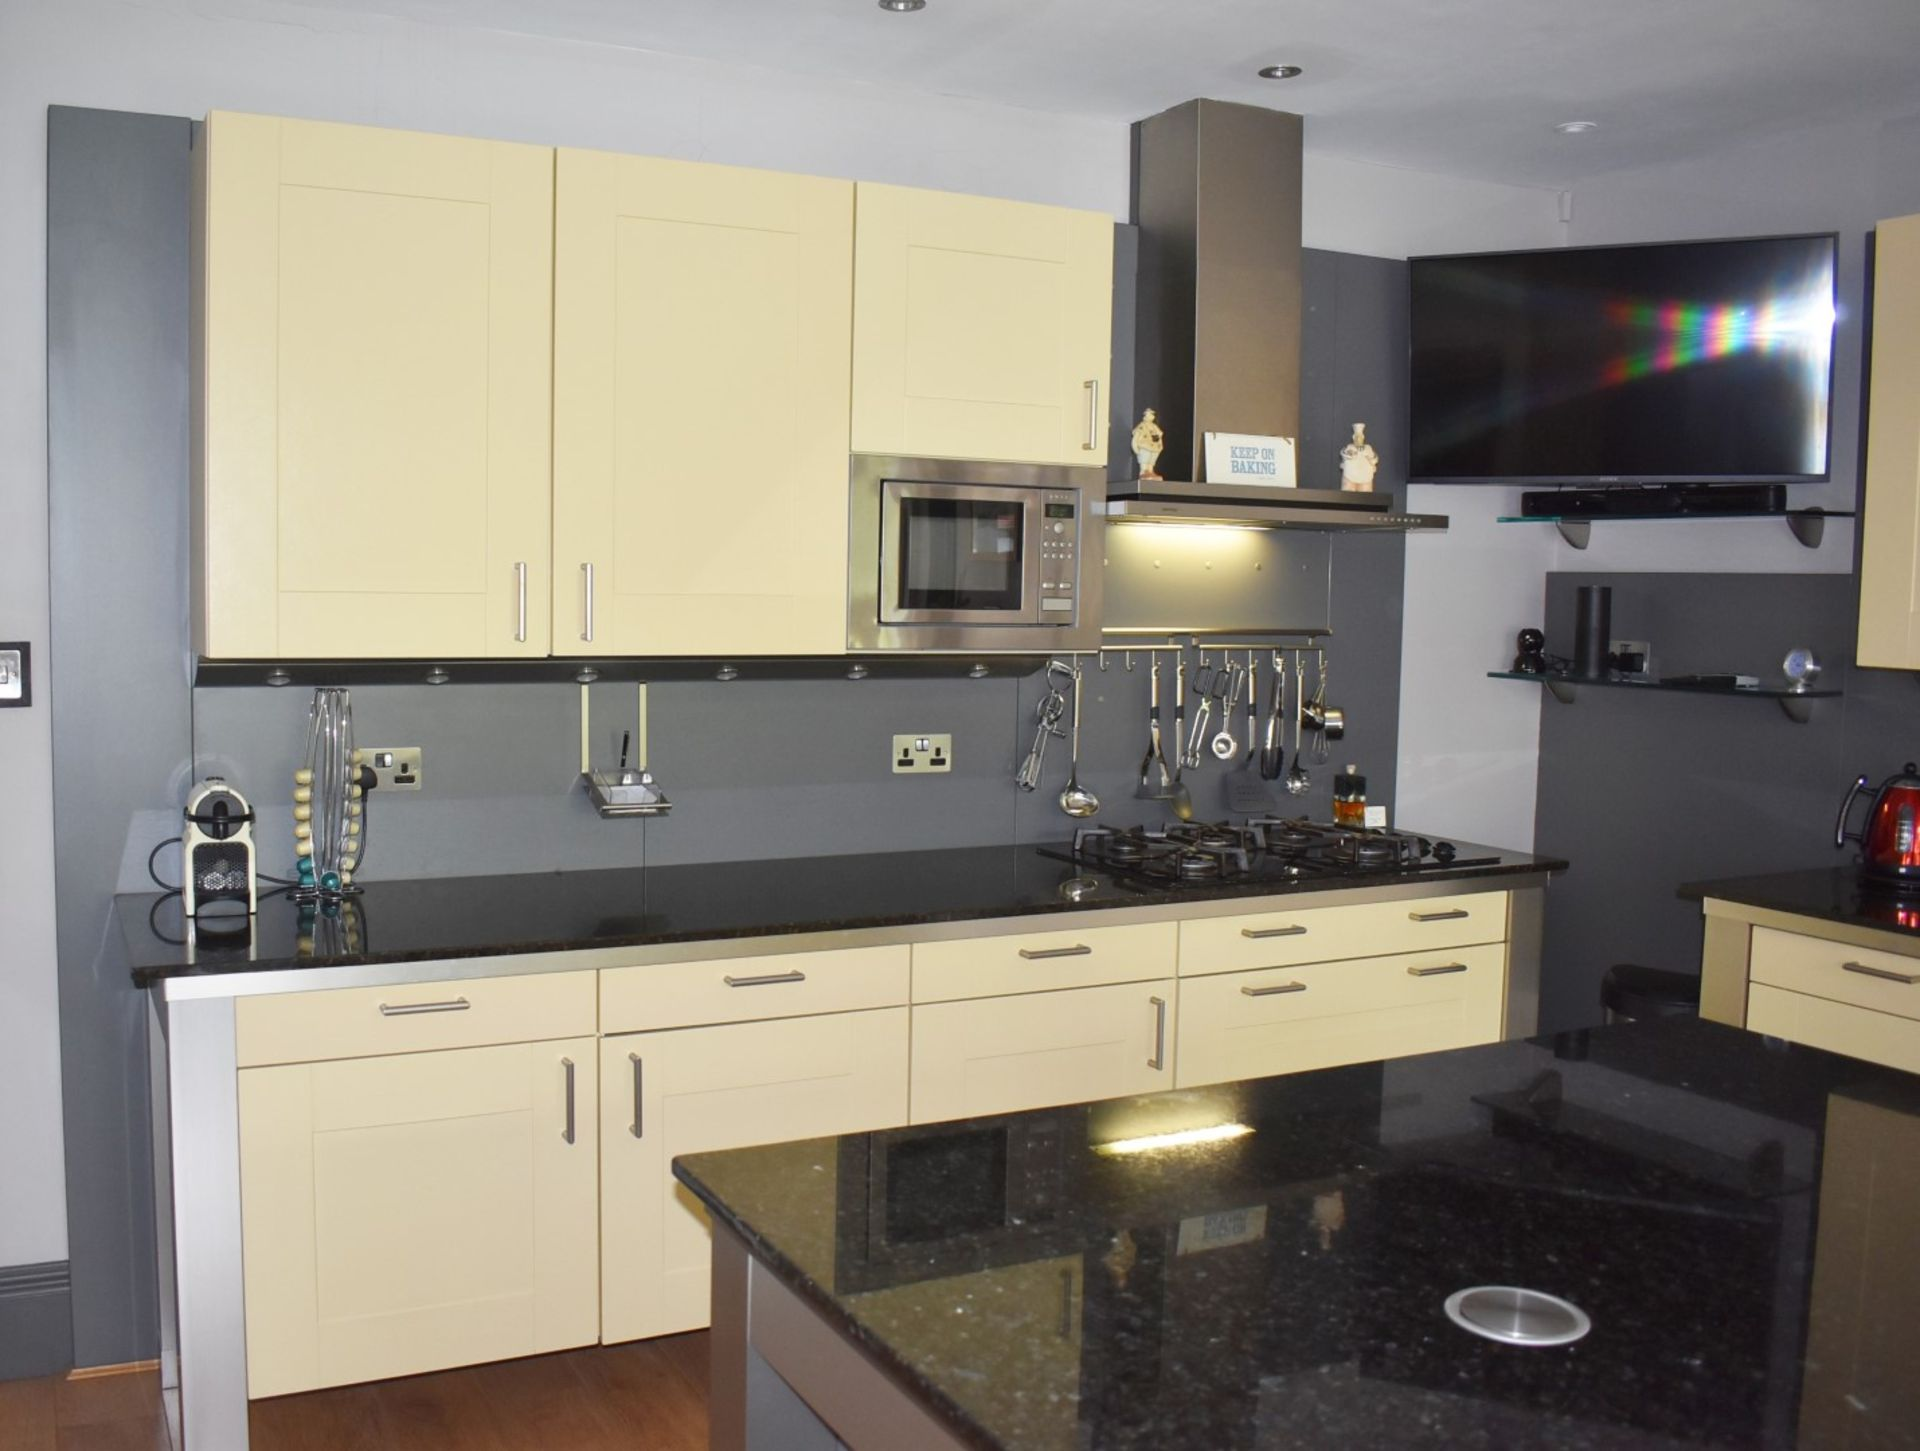 1 x SieMatic Contemporary Fitted Kitchen With Appliances - Features Shaker Style Doors, Central - Image 64 of 96